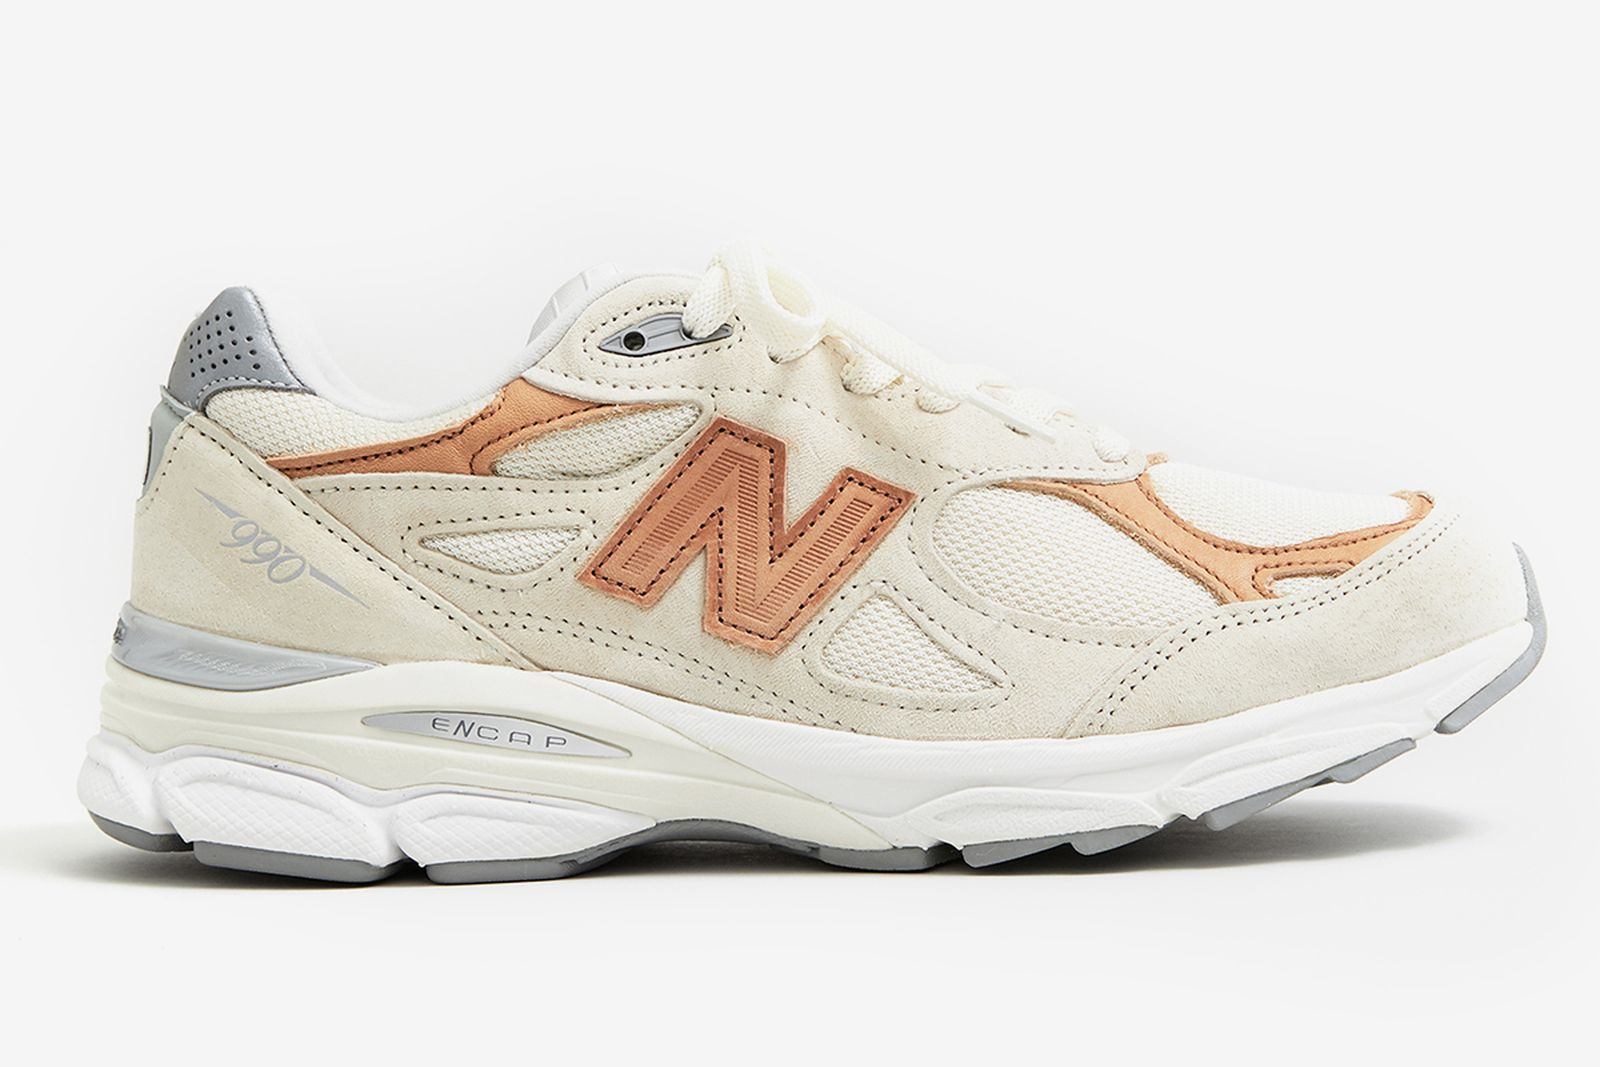 Todd Snyder X New Balance 990 Pale Ale Release Date Price Info